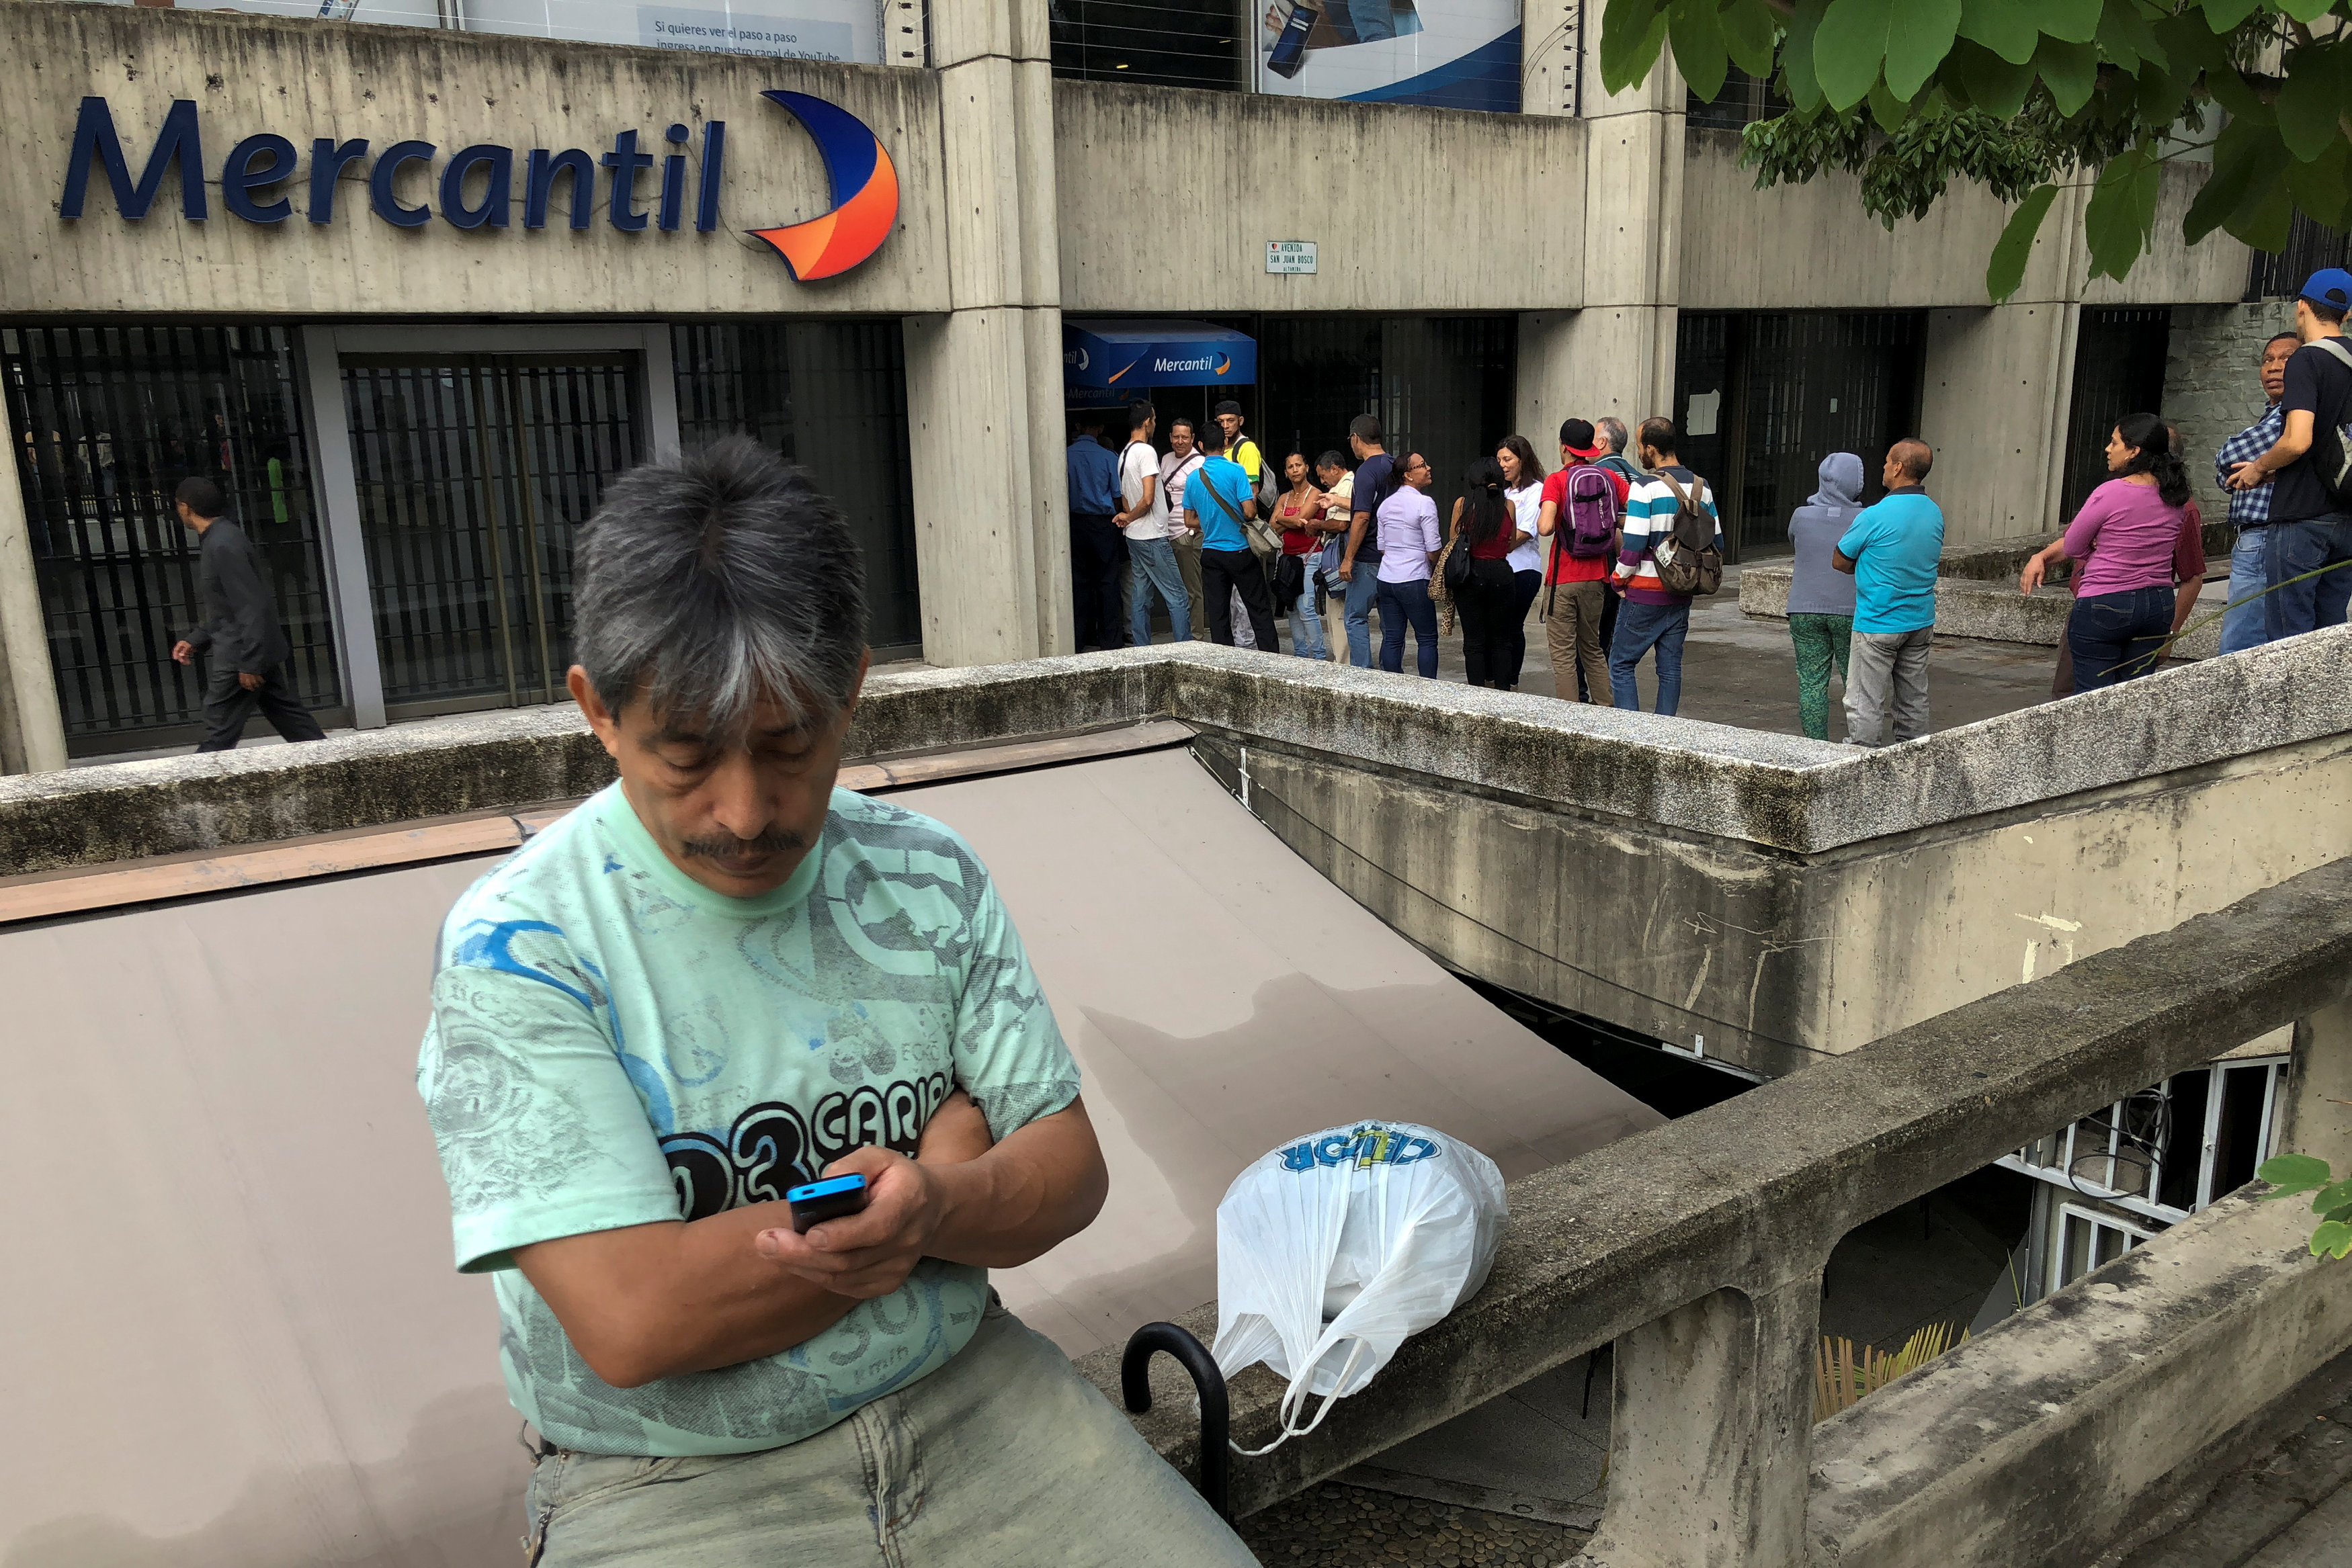 People queue to withdraw cash from automated teller machines (ATM) at a Mercantil bank branch in Caracas, Venezuela August 21, 2018. REUTERS/Carlos Garcia Rawlins